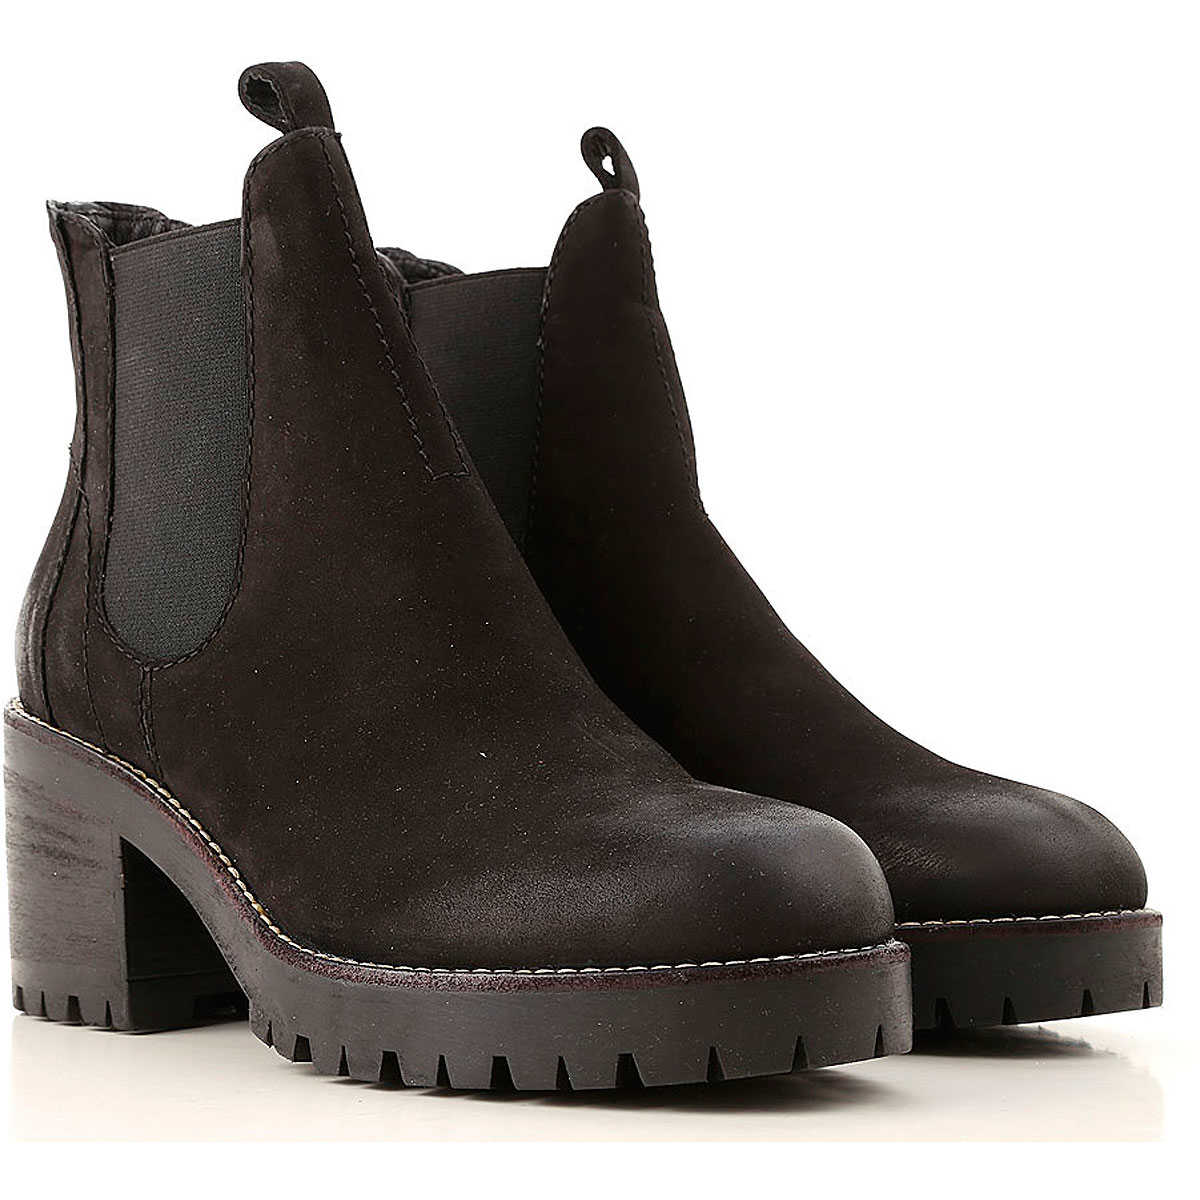 Elvio Zanon Chelsea Boots for Women Black SE - GOOFASH